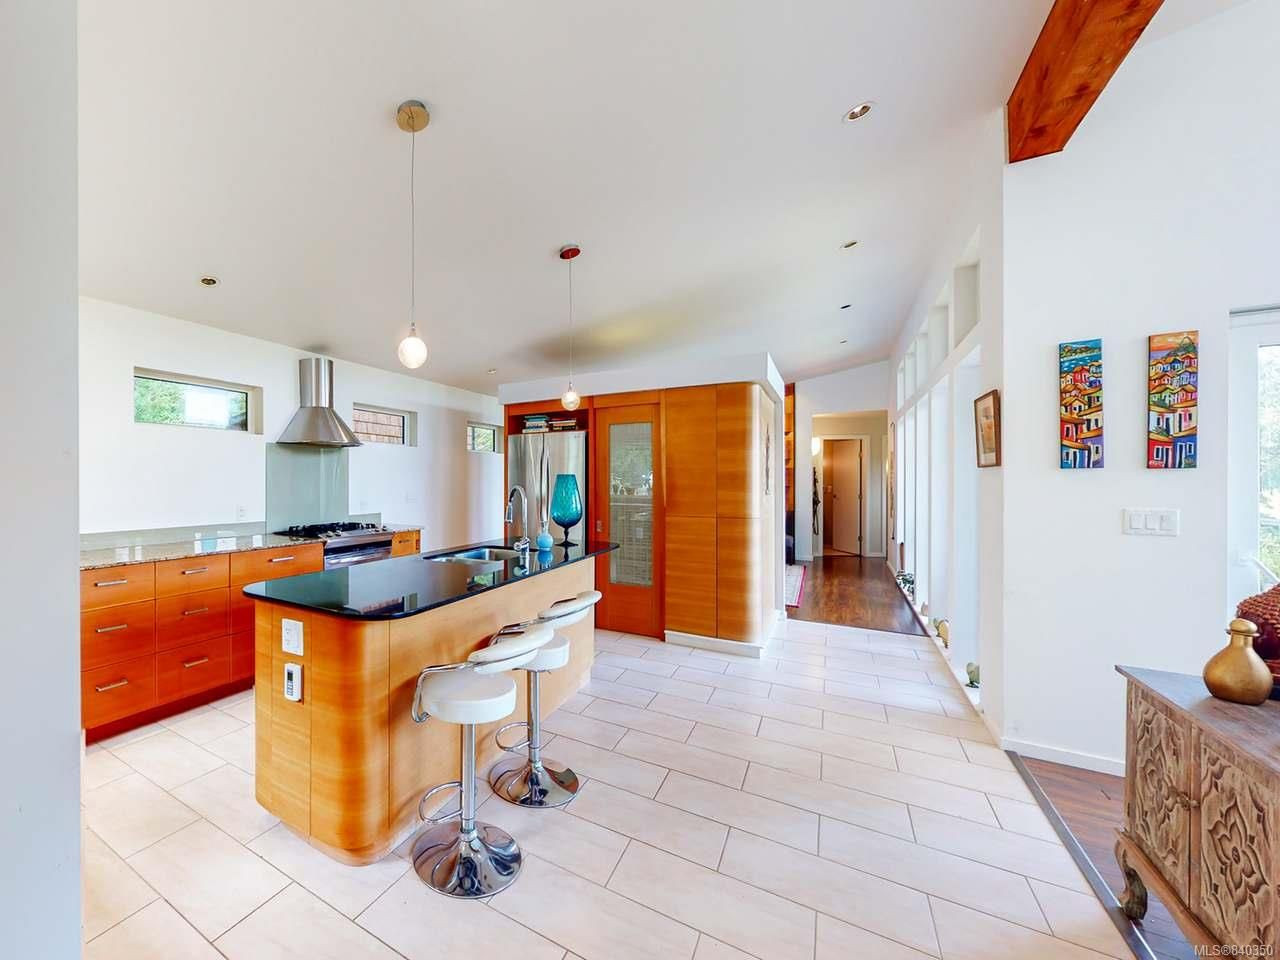 Photo 13: Photos: 1068 Helen Rd in UCLUELET: PA Ucluelet House for sale (Port Alberni)  : MLS®# 840350